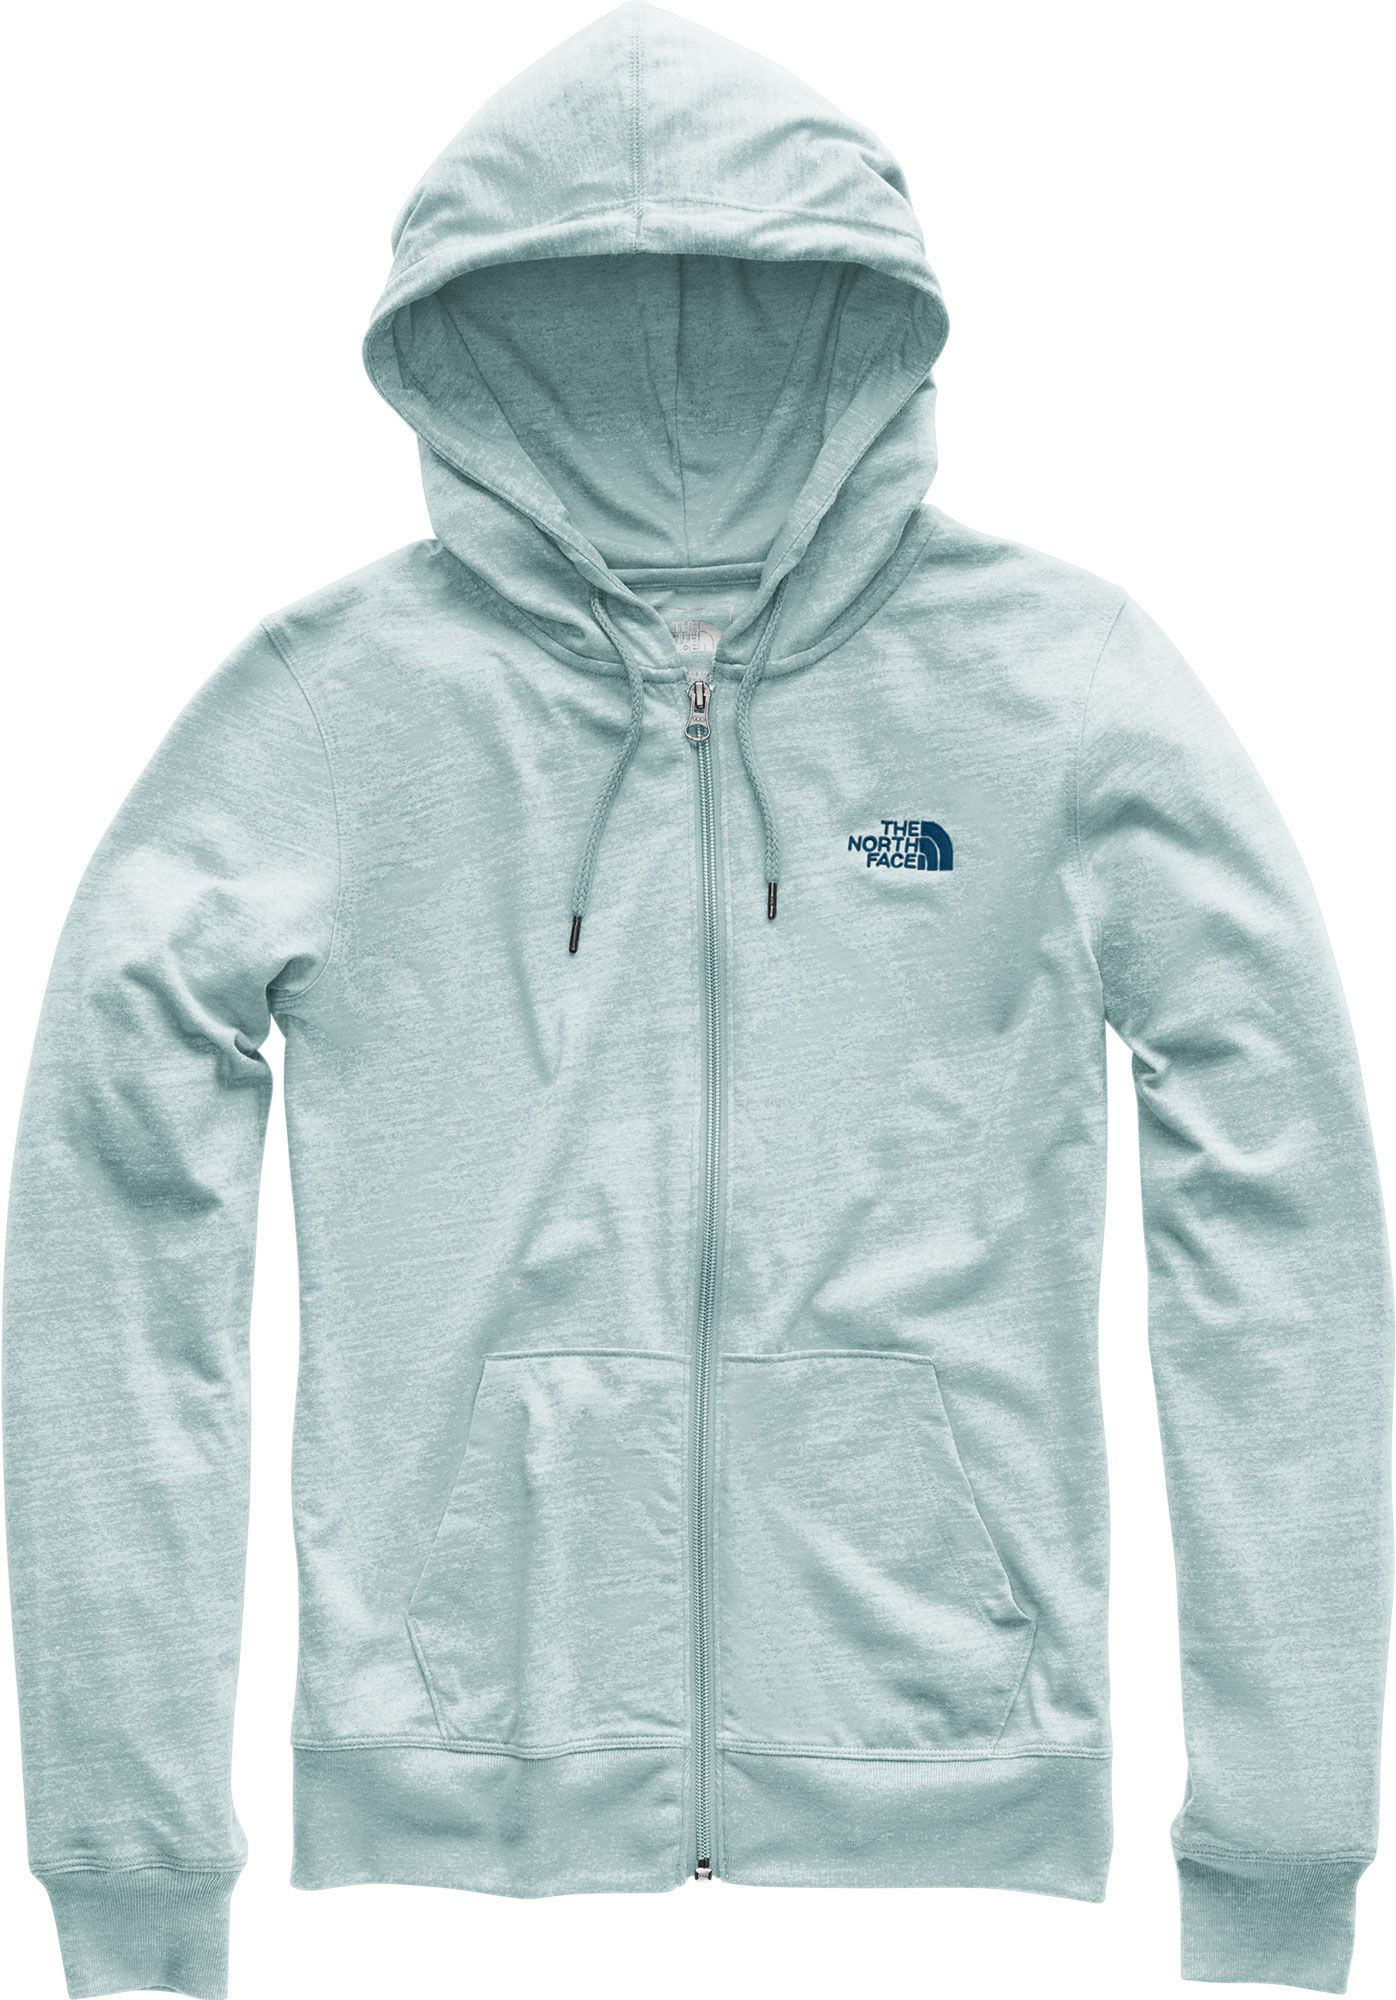 620354811 The North Face Women's Lite Weight Full Zip Hoodie